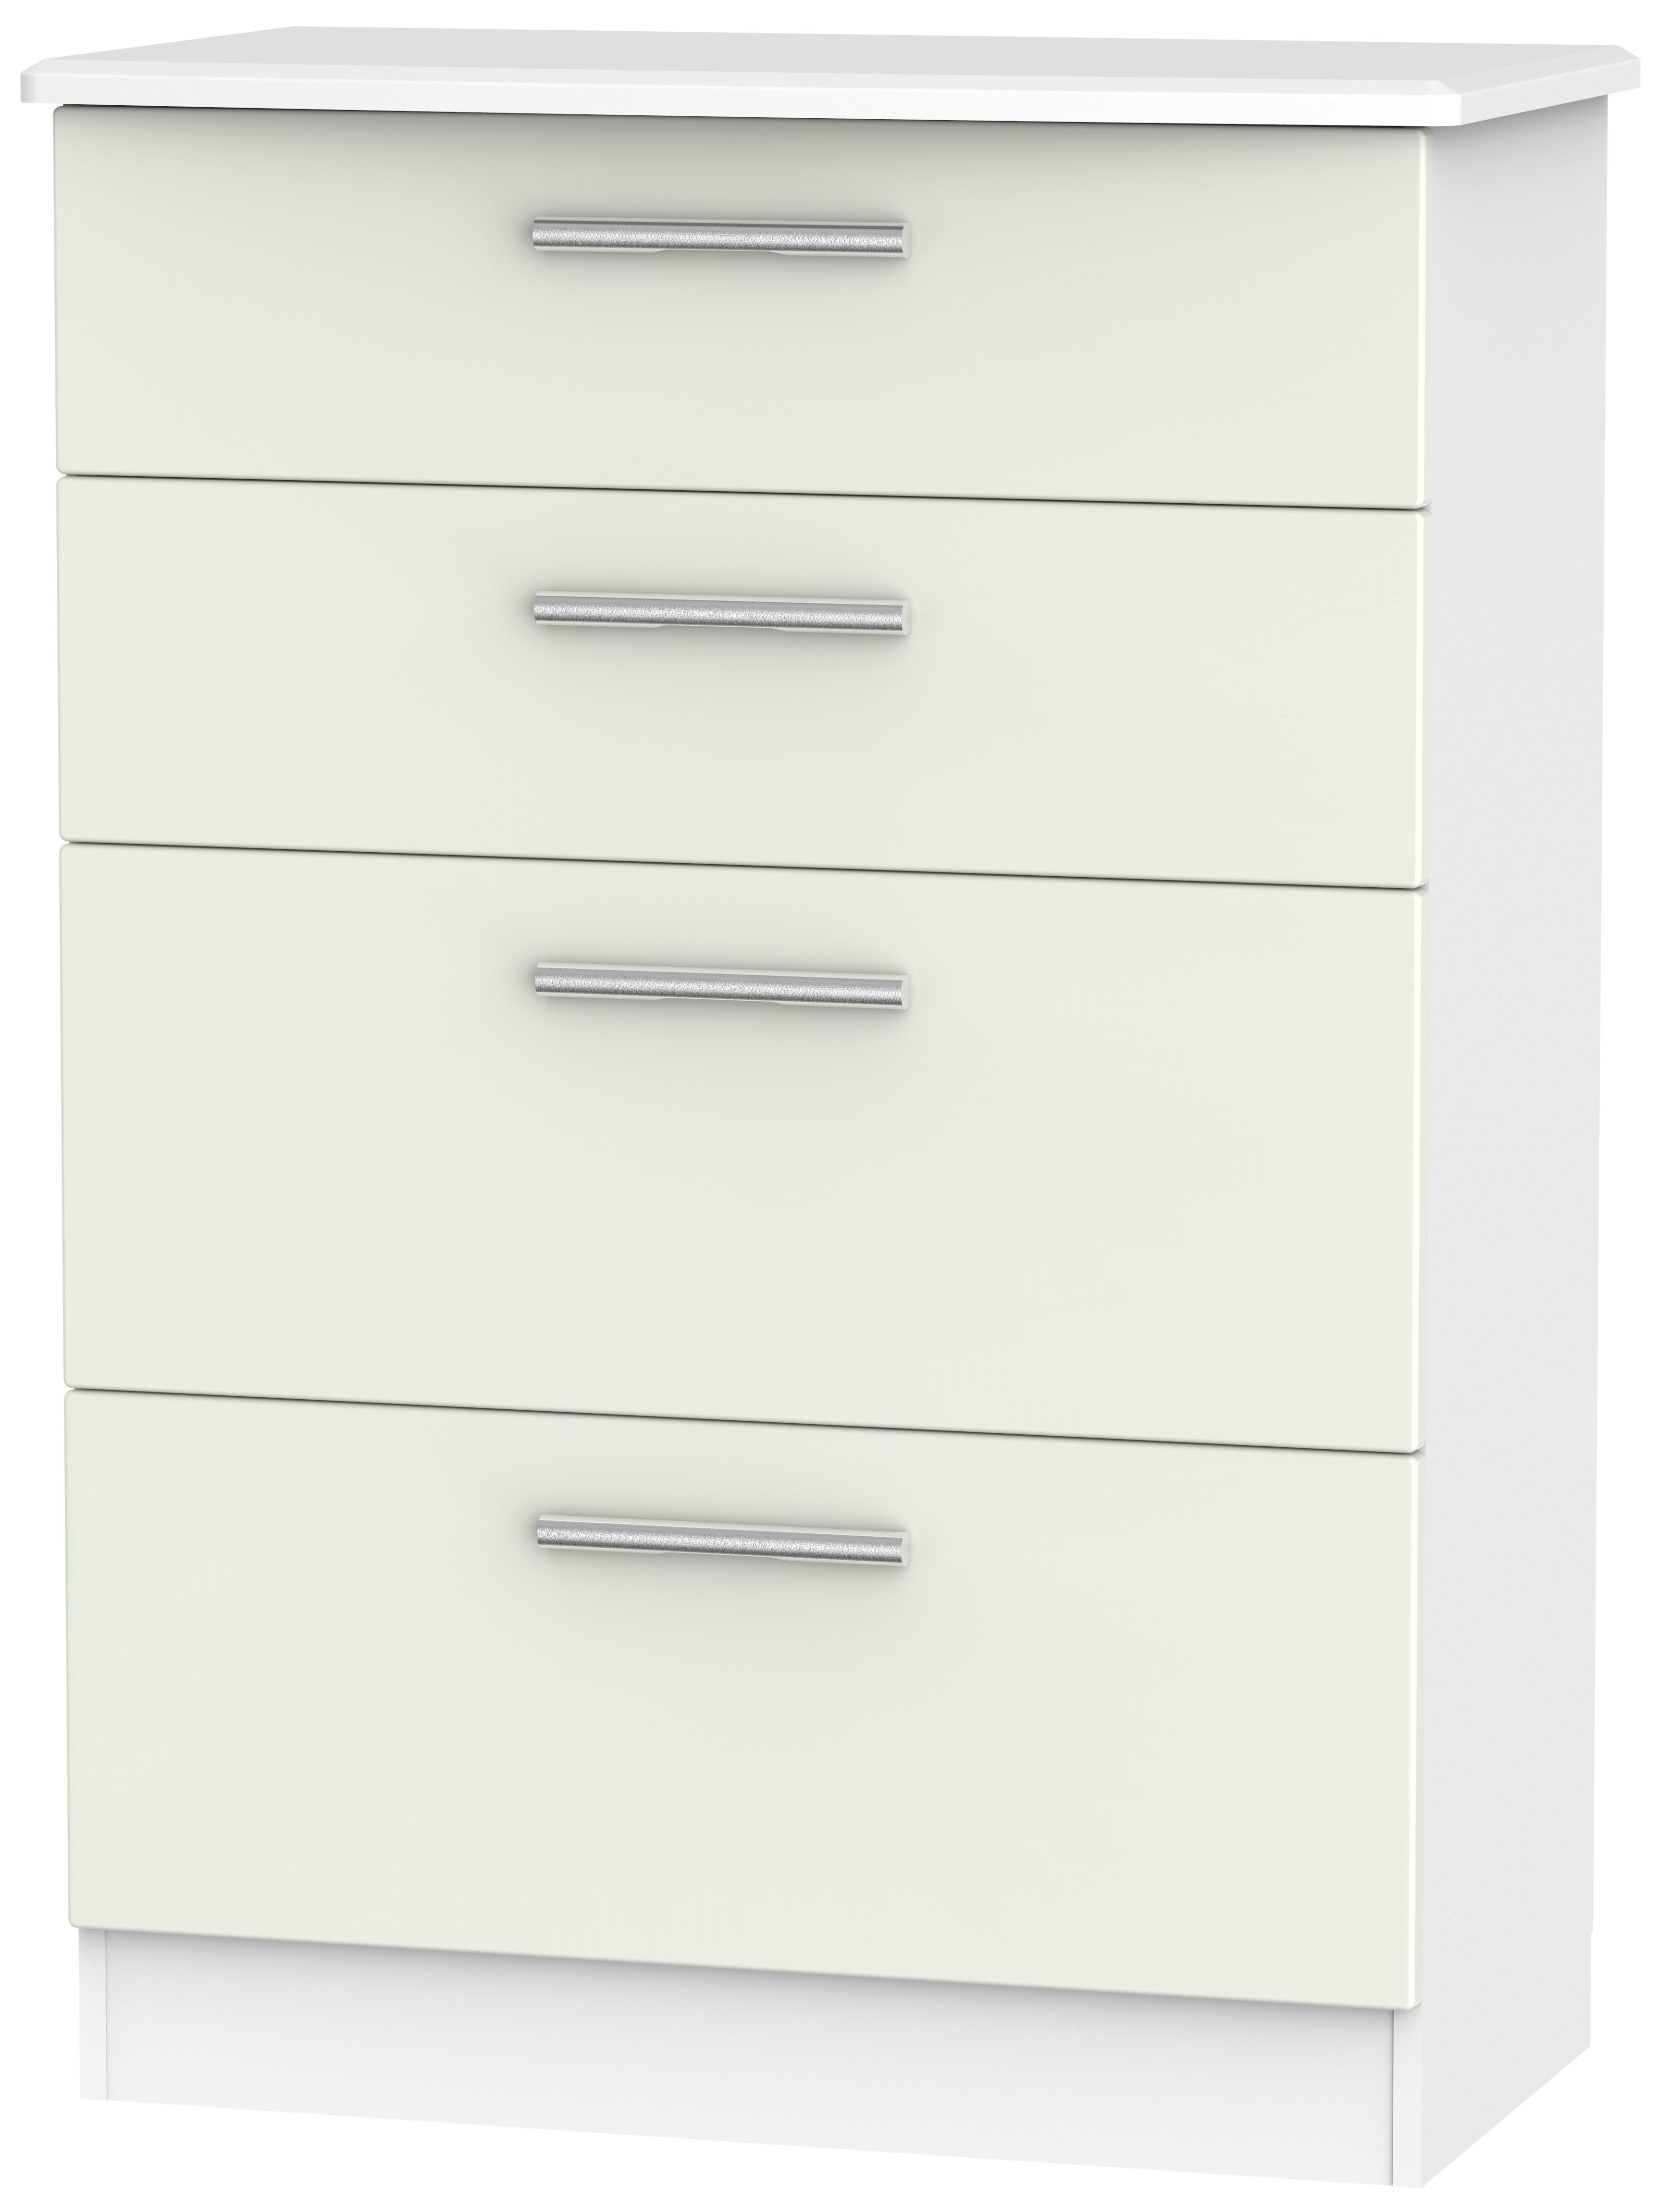 Knightsbridge 4 Drawer Deep Chest - Kaschmir Matt and White